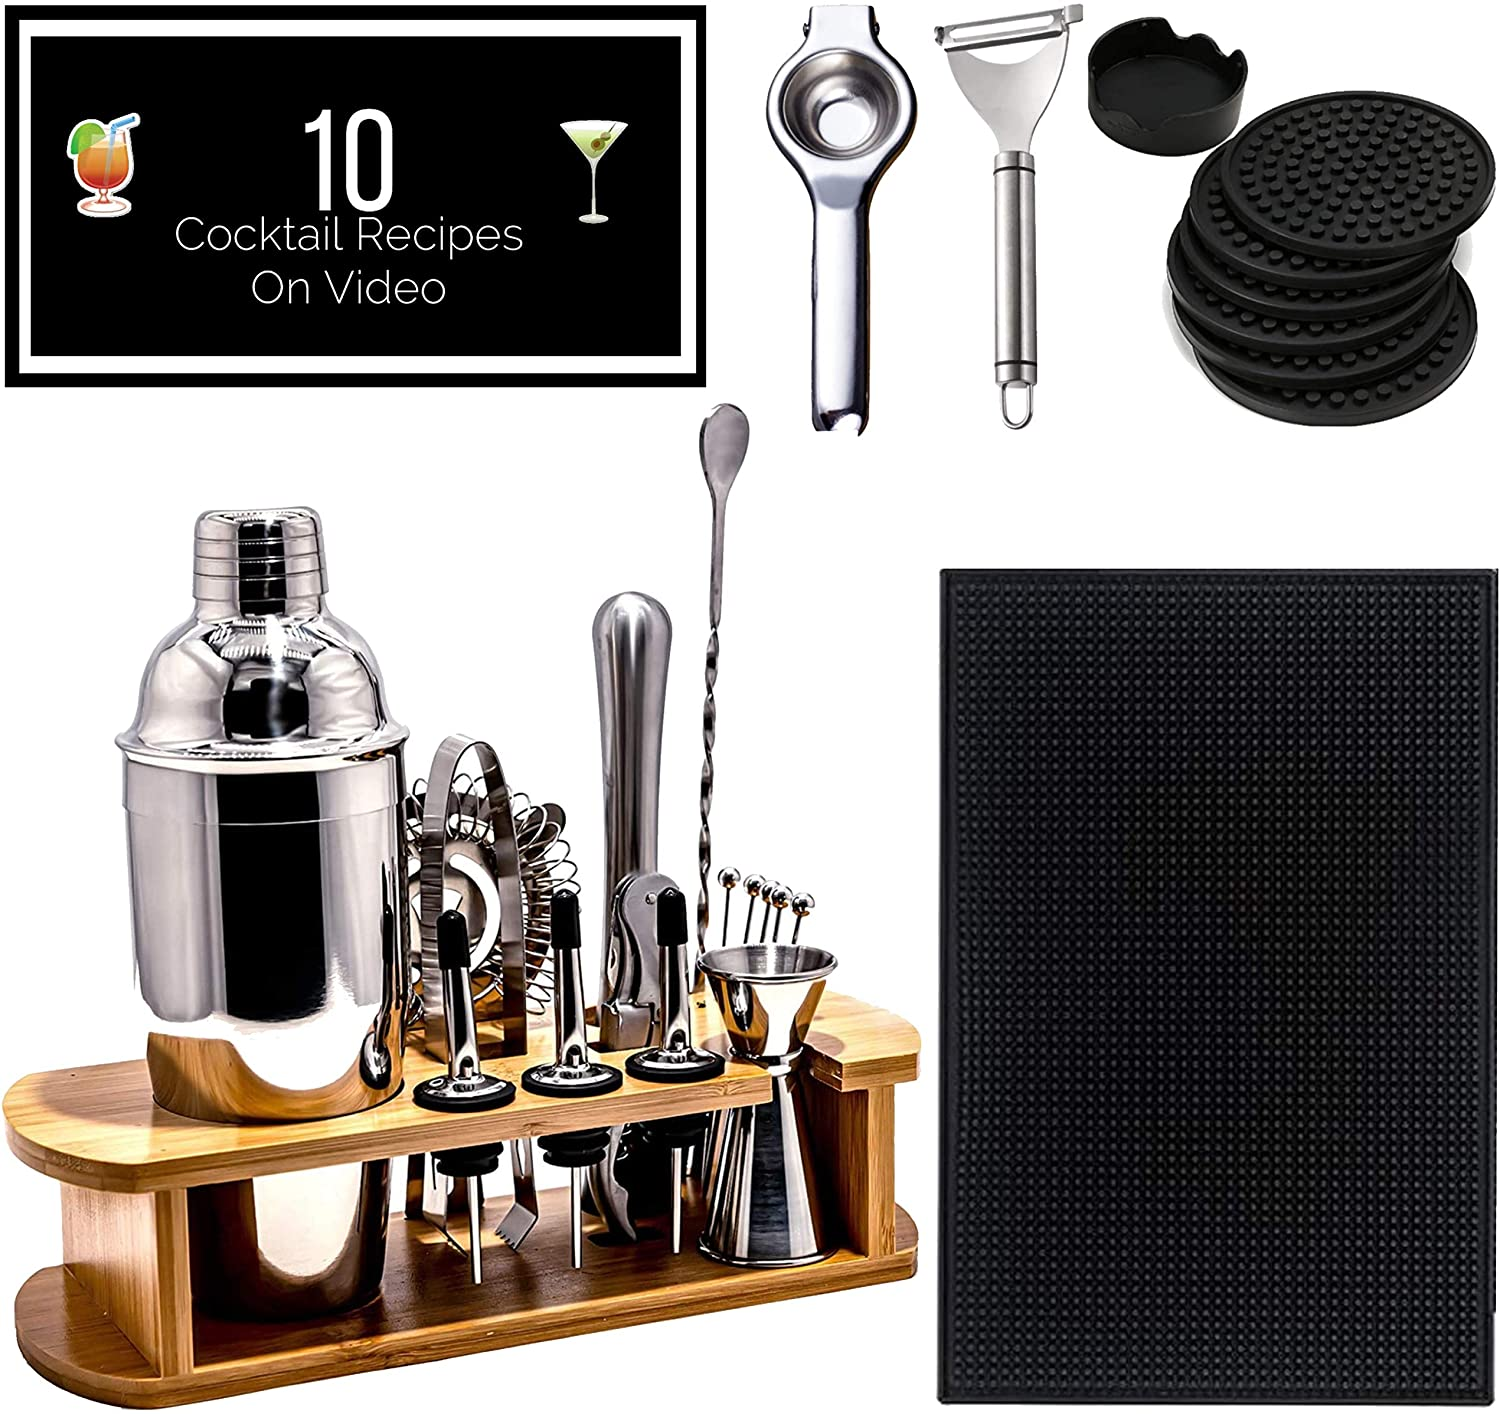 Professional bartender and mixology kit stainless steel bar tools set 26 pcs. Bar mat, coasters, peeler and squeezer, martini shaker (coctelera), accessories, stand, 10 cocktail mixing drinks recipes.